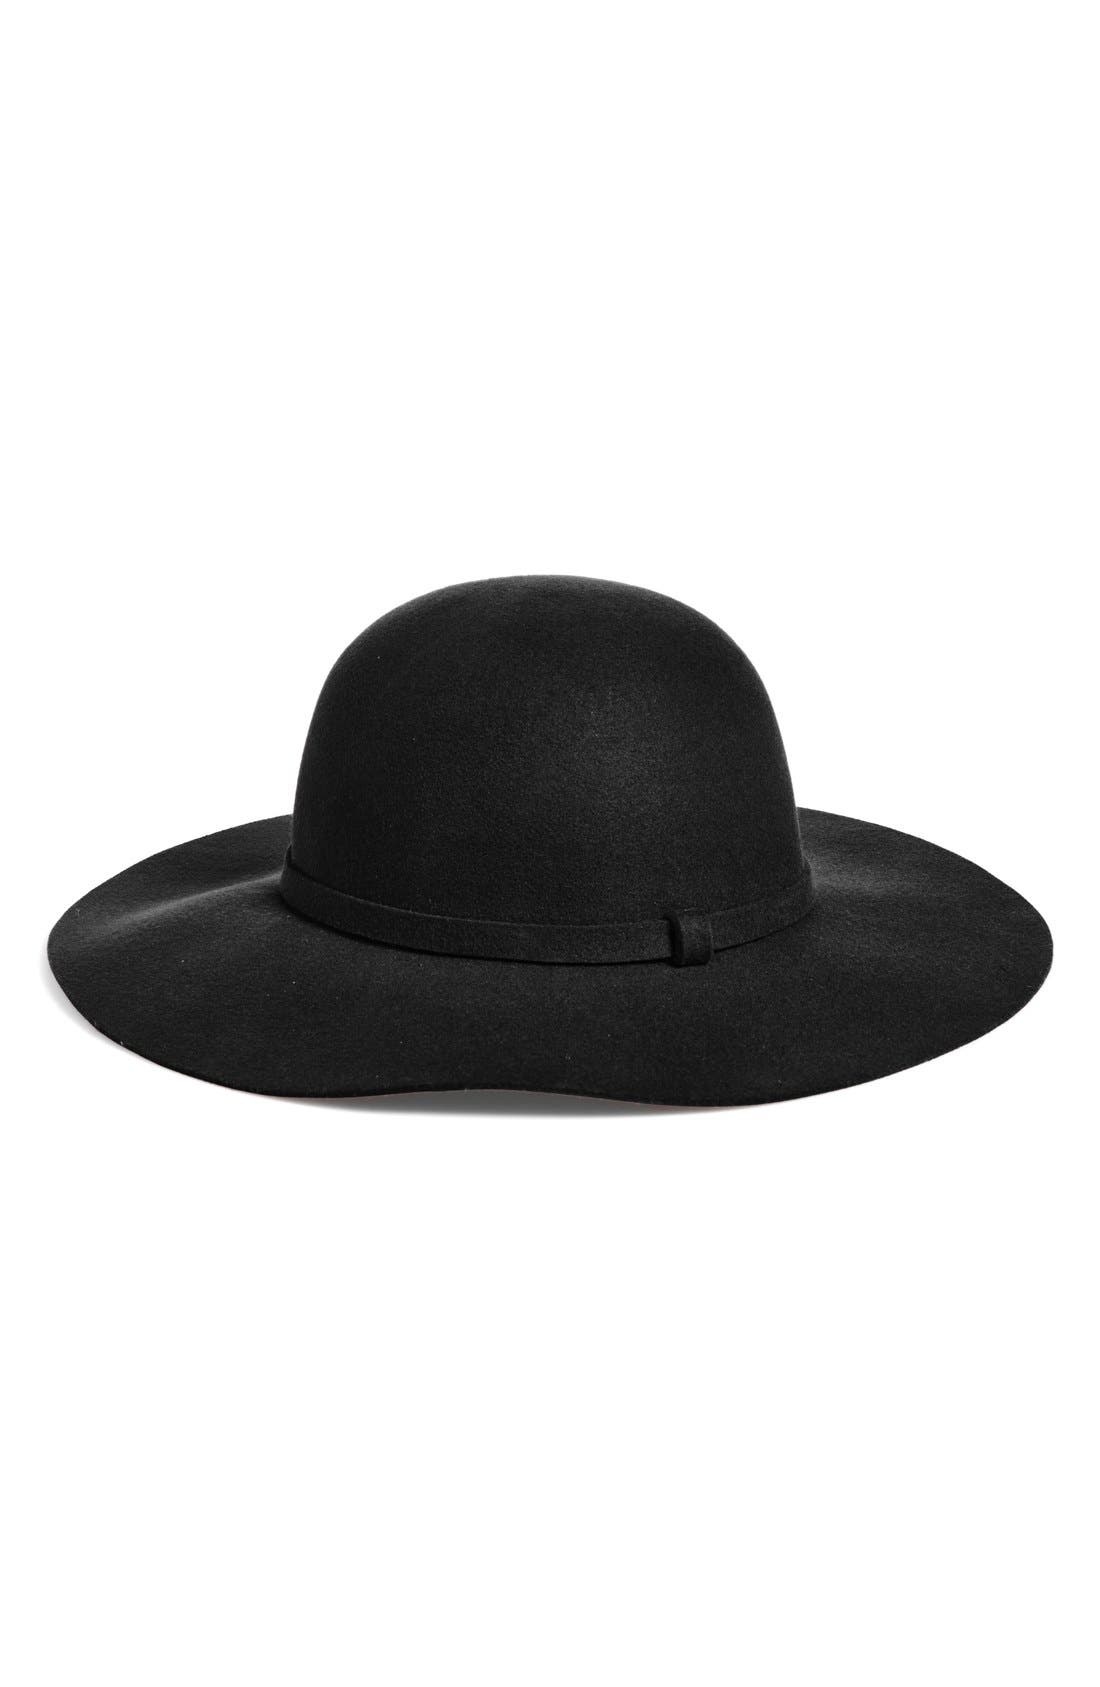 Alternate Image 1 Selected - Phase 3 Floppy Wool Hat